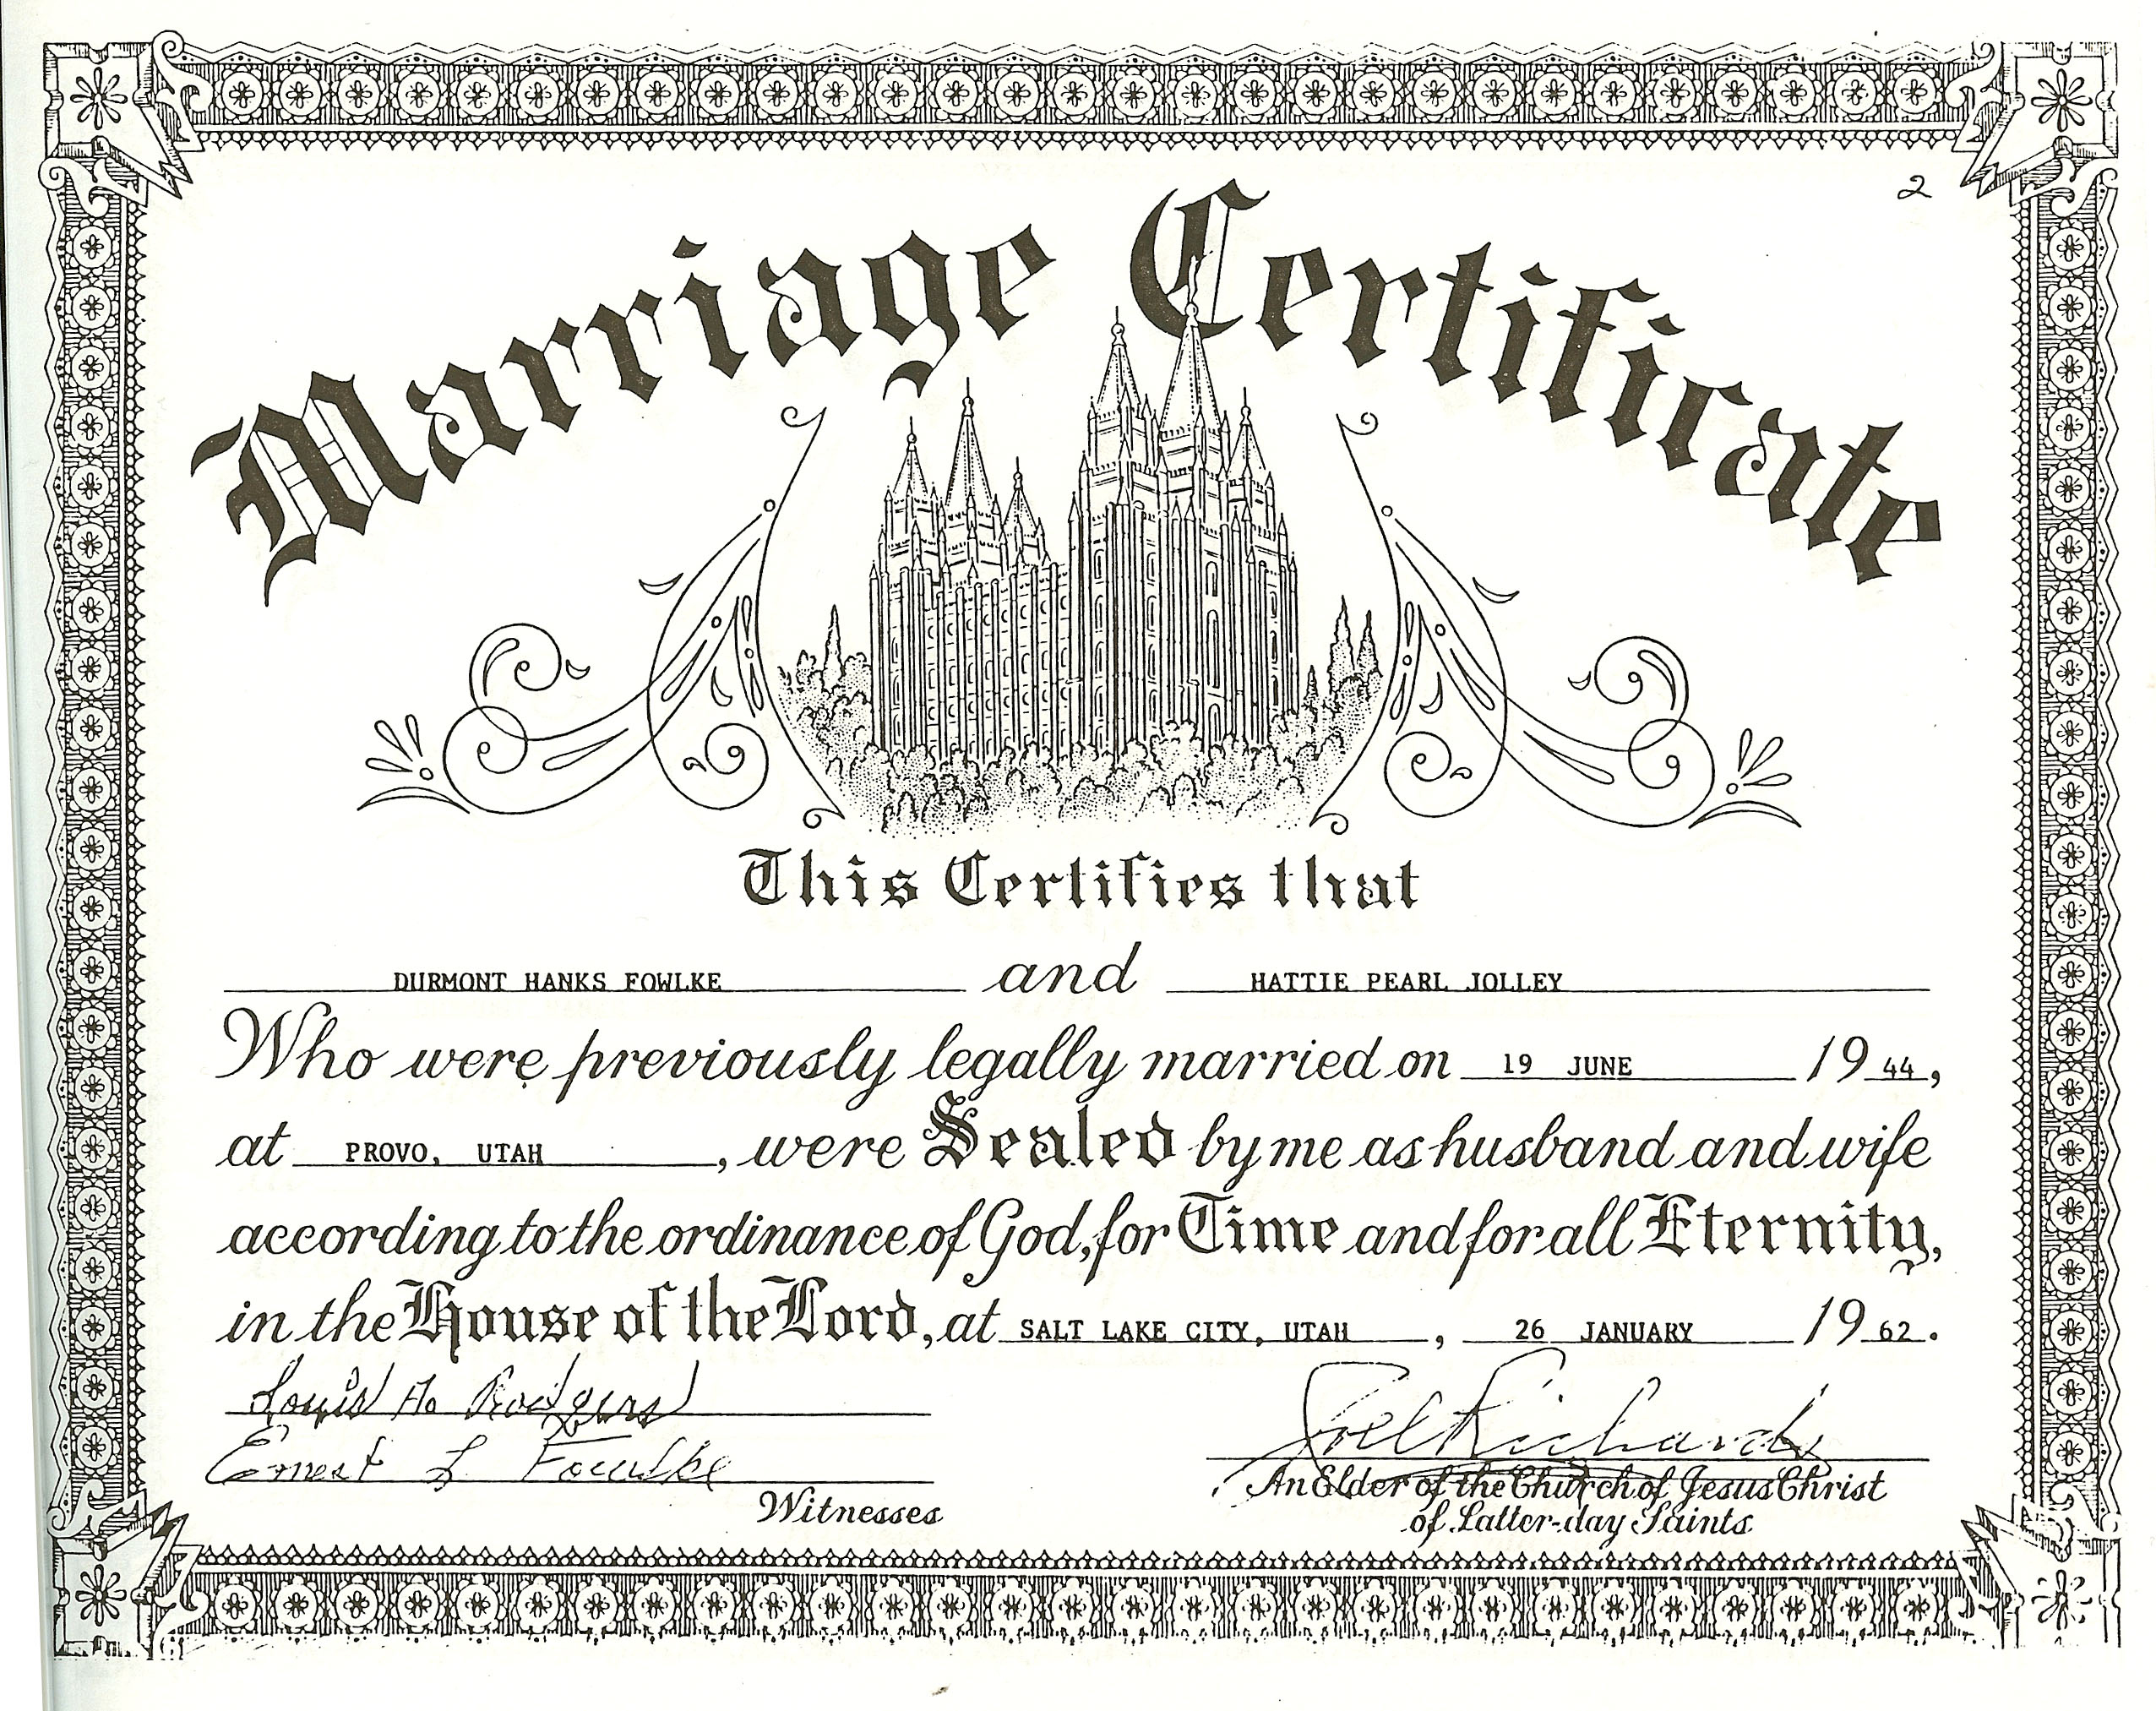 Certificate Fake Marriage Printable Filename | Elsik Blue Cetane - Fake Marriage Certificate Printable Free